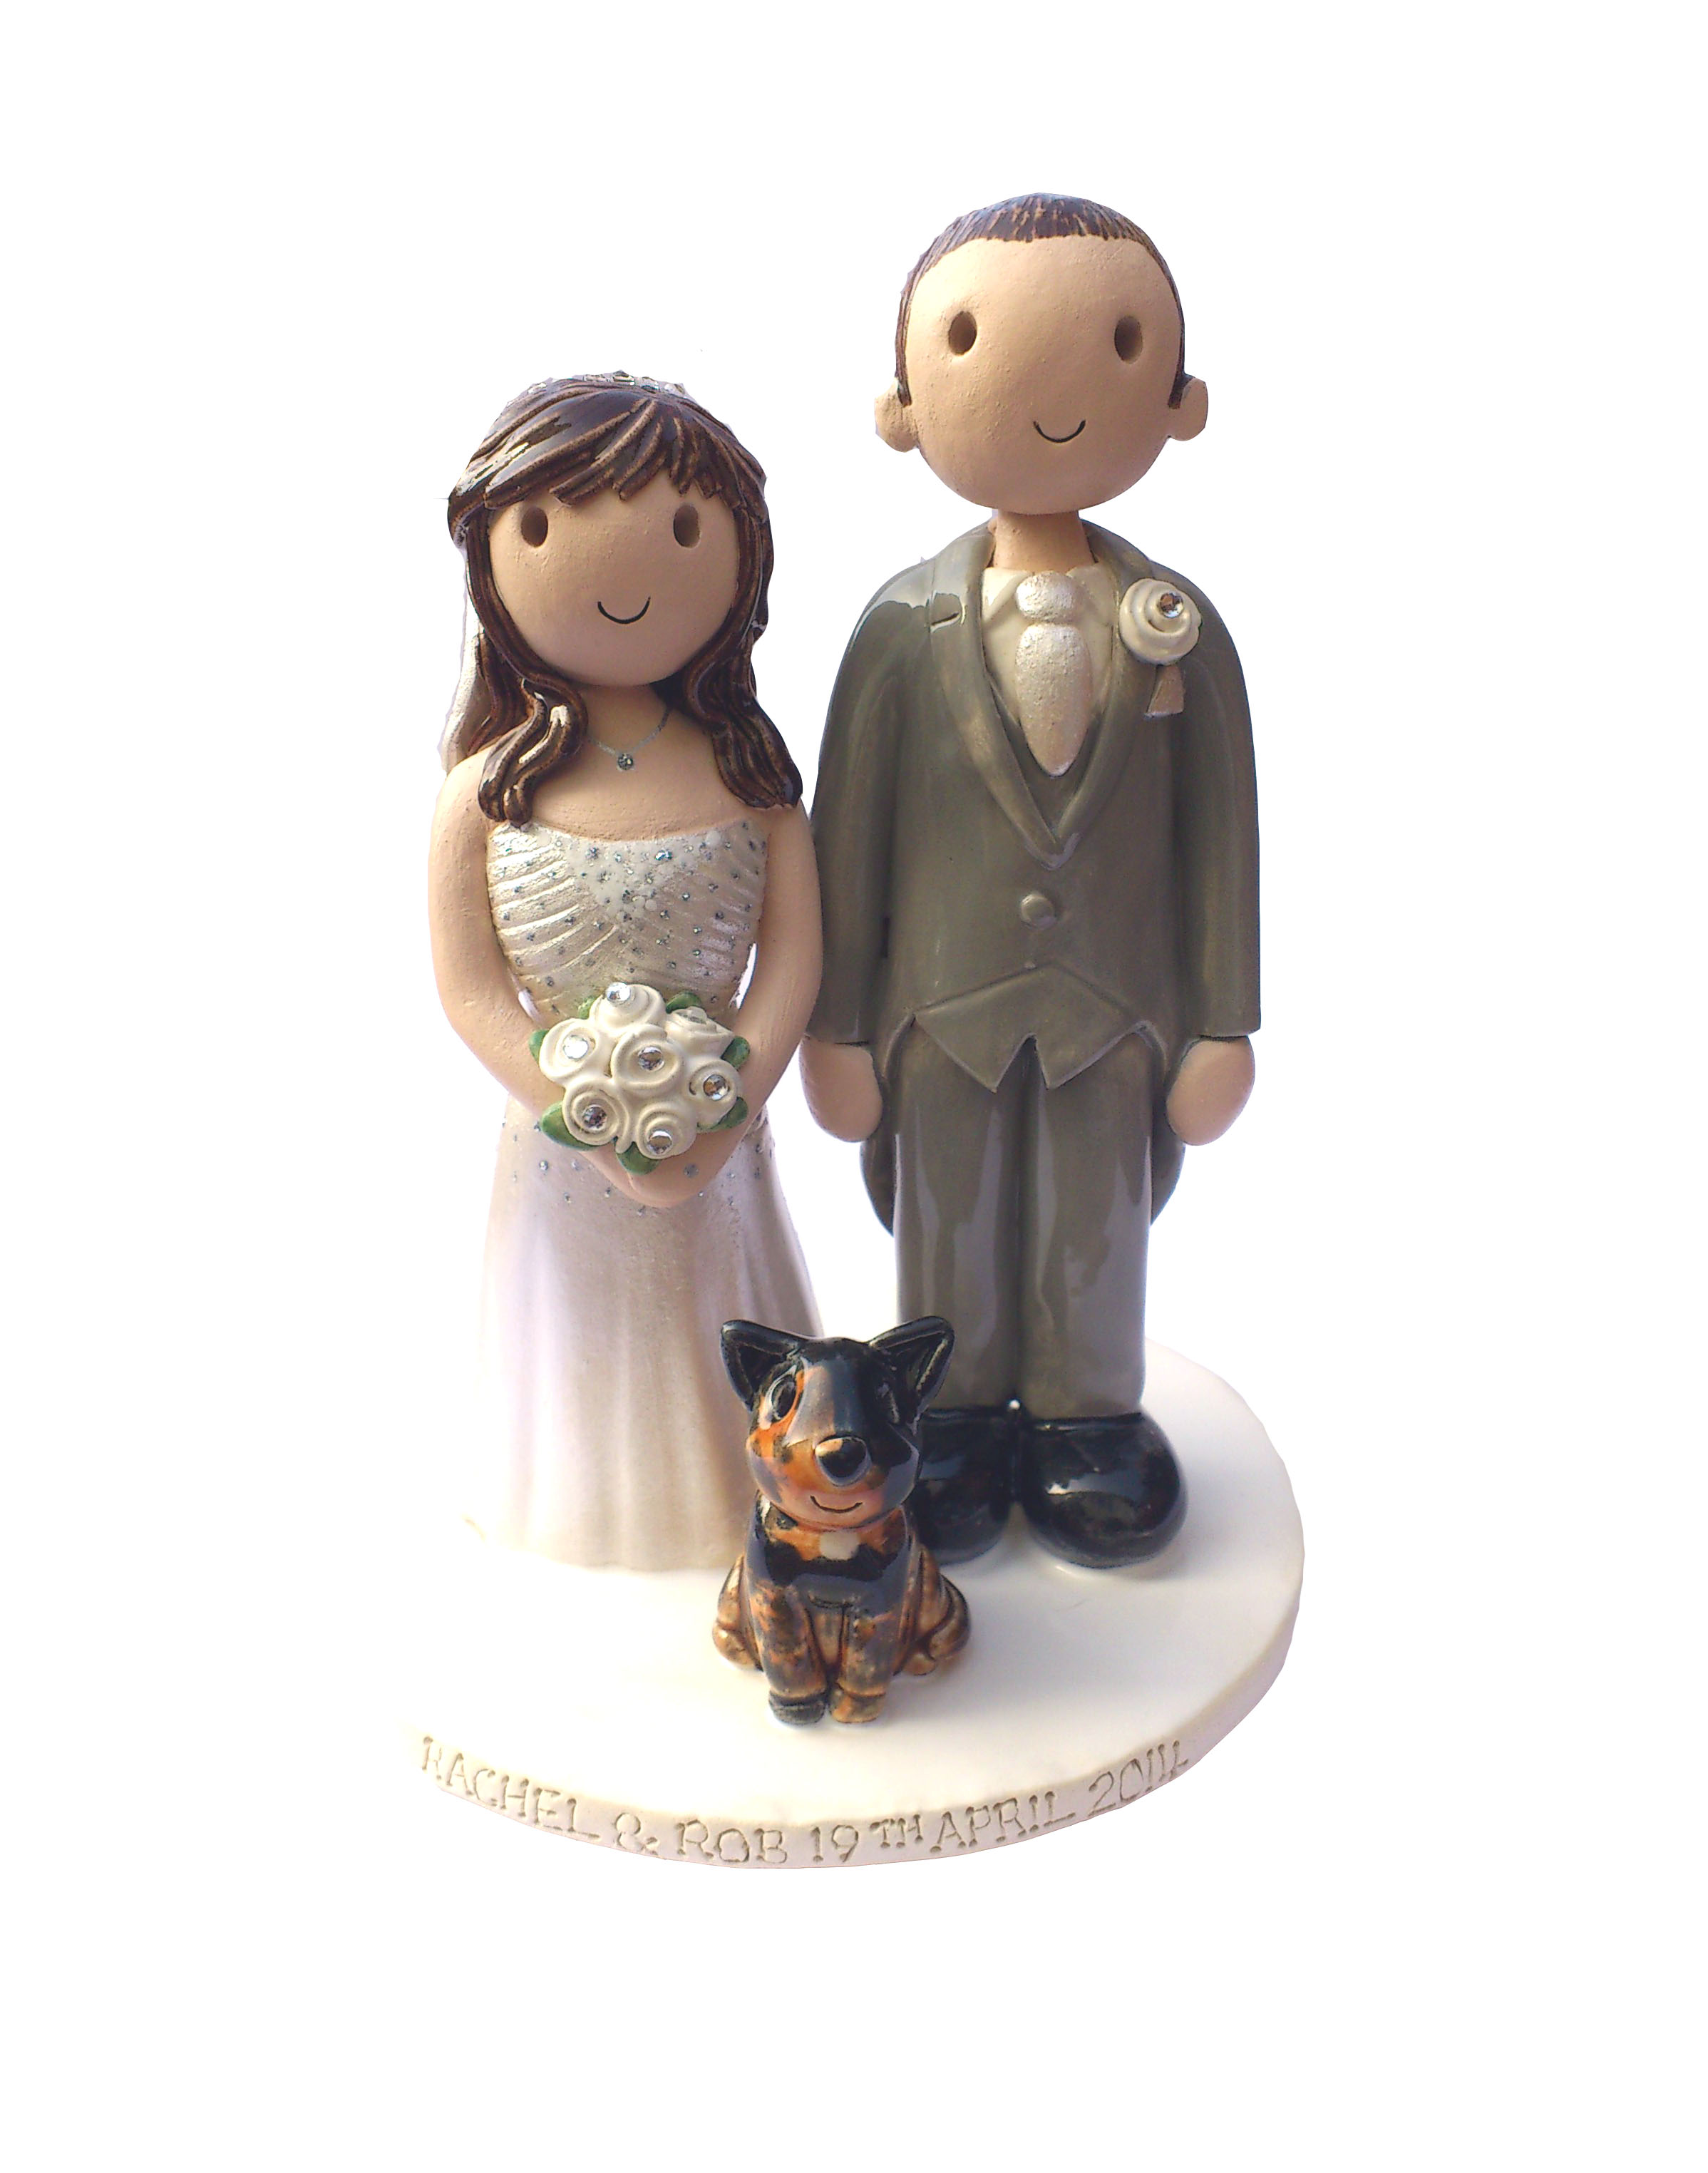 uk wedding cake toppers wedding cake toppers gallery made personalised cake 21410